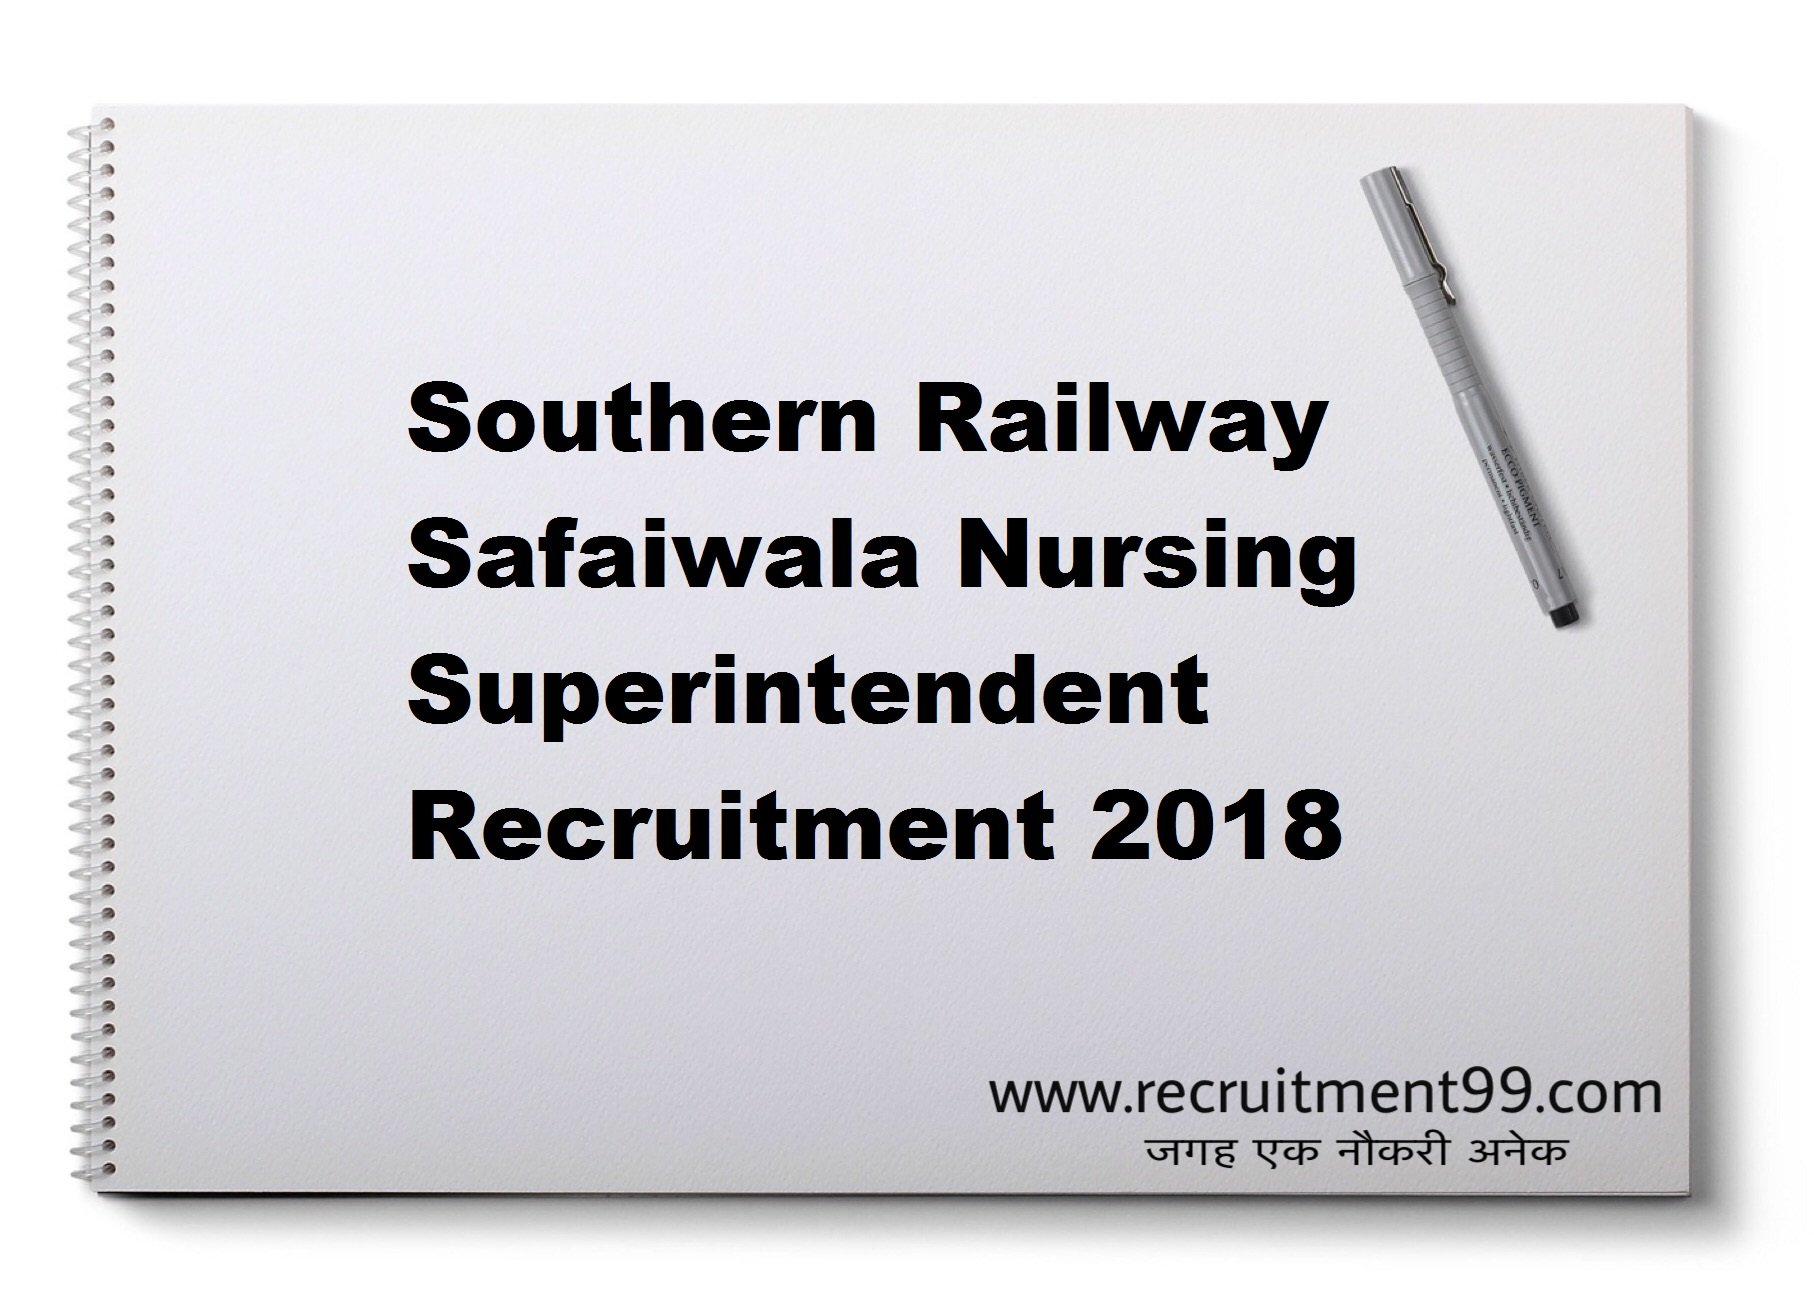 Southern Railway Safaiwala Nursing Superintendent Recruitment Admit Card Result 2018